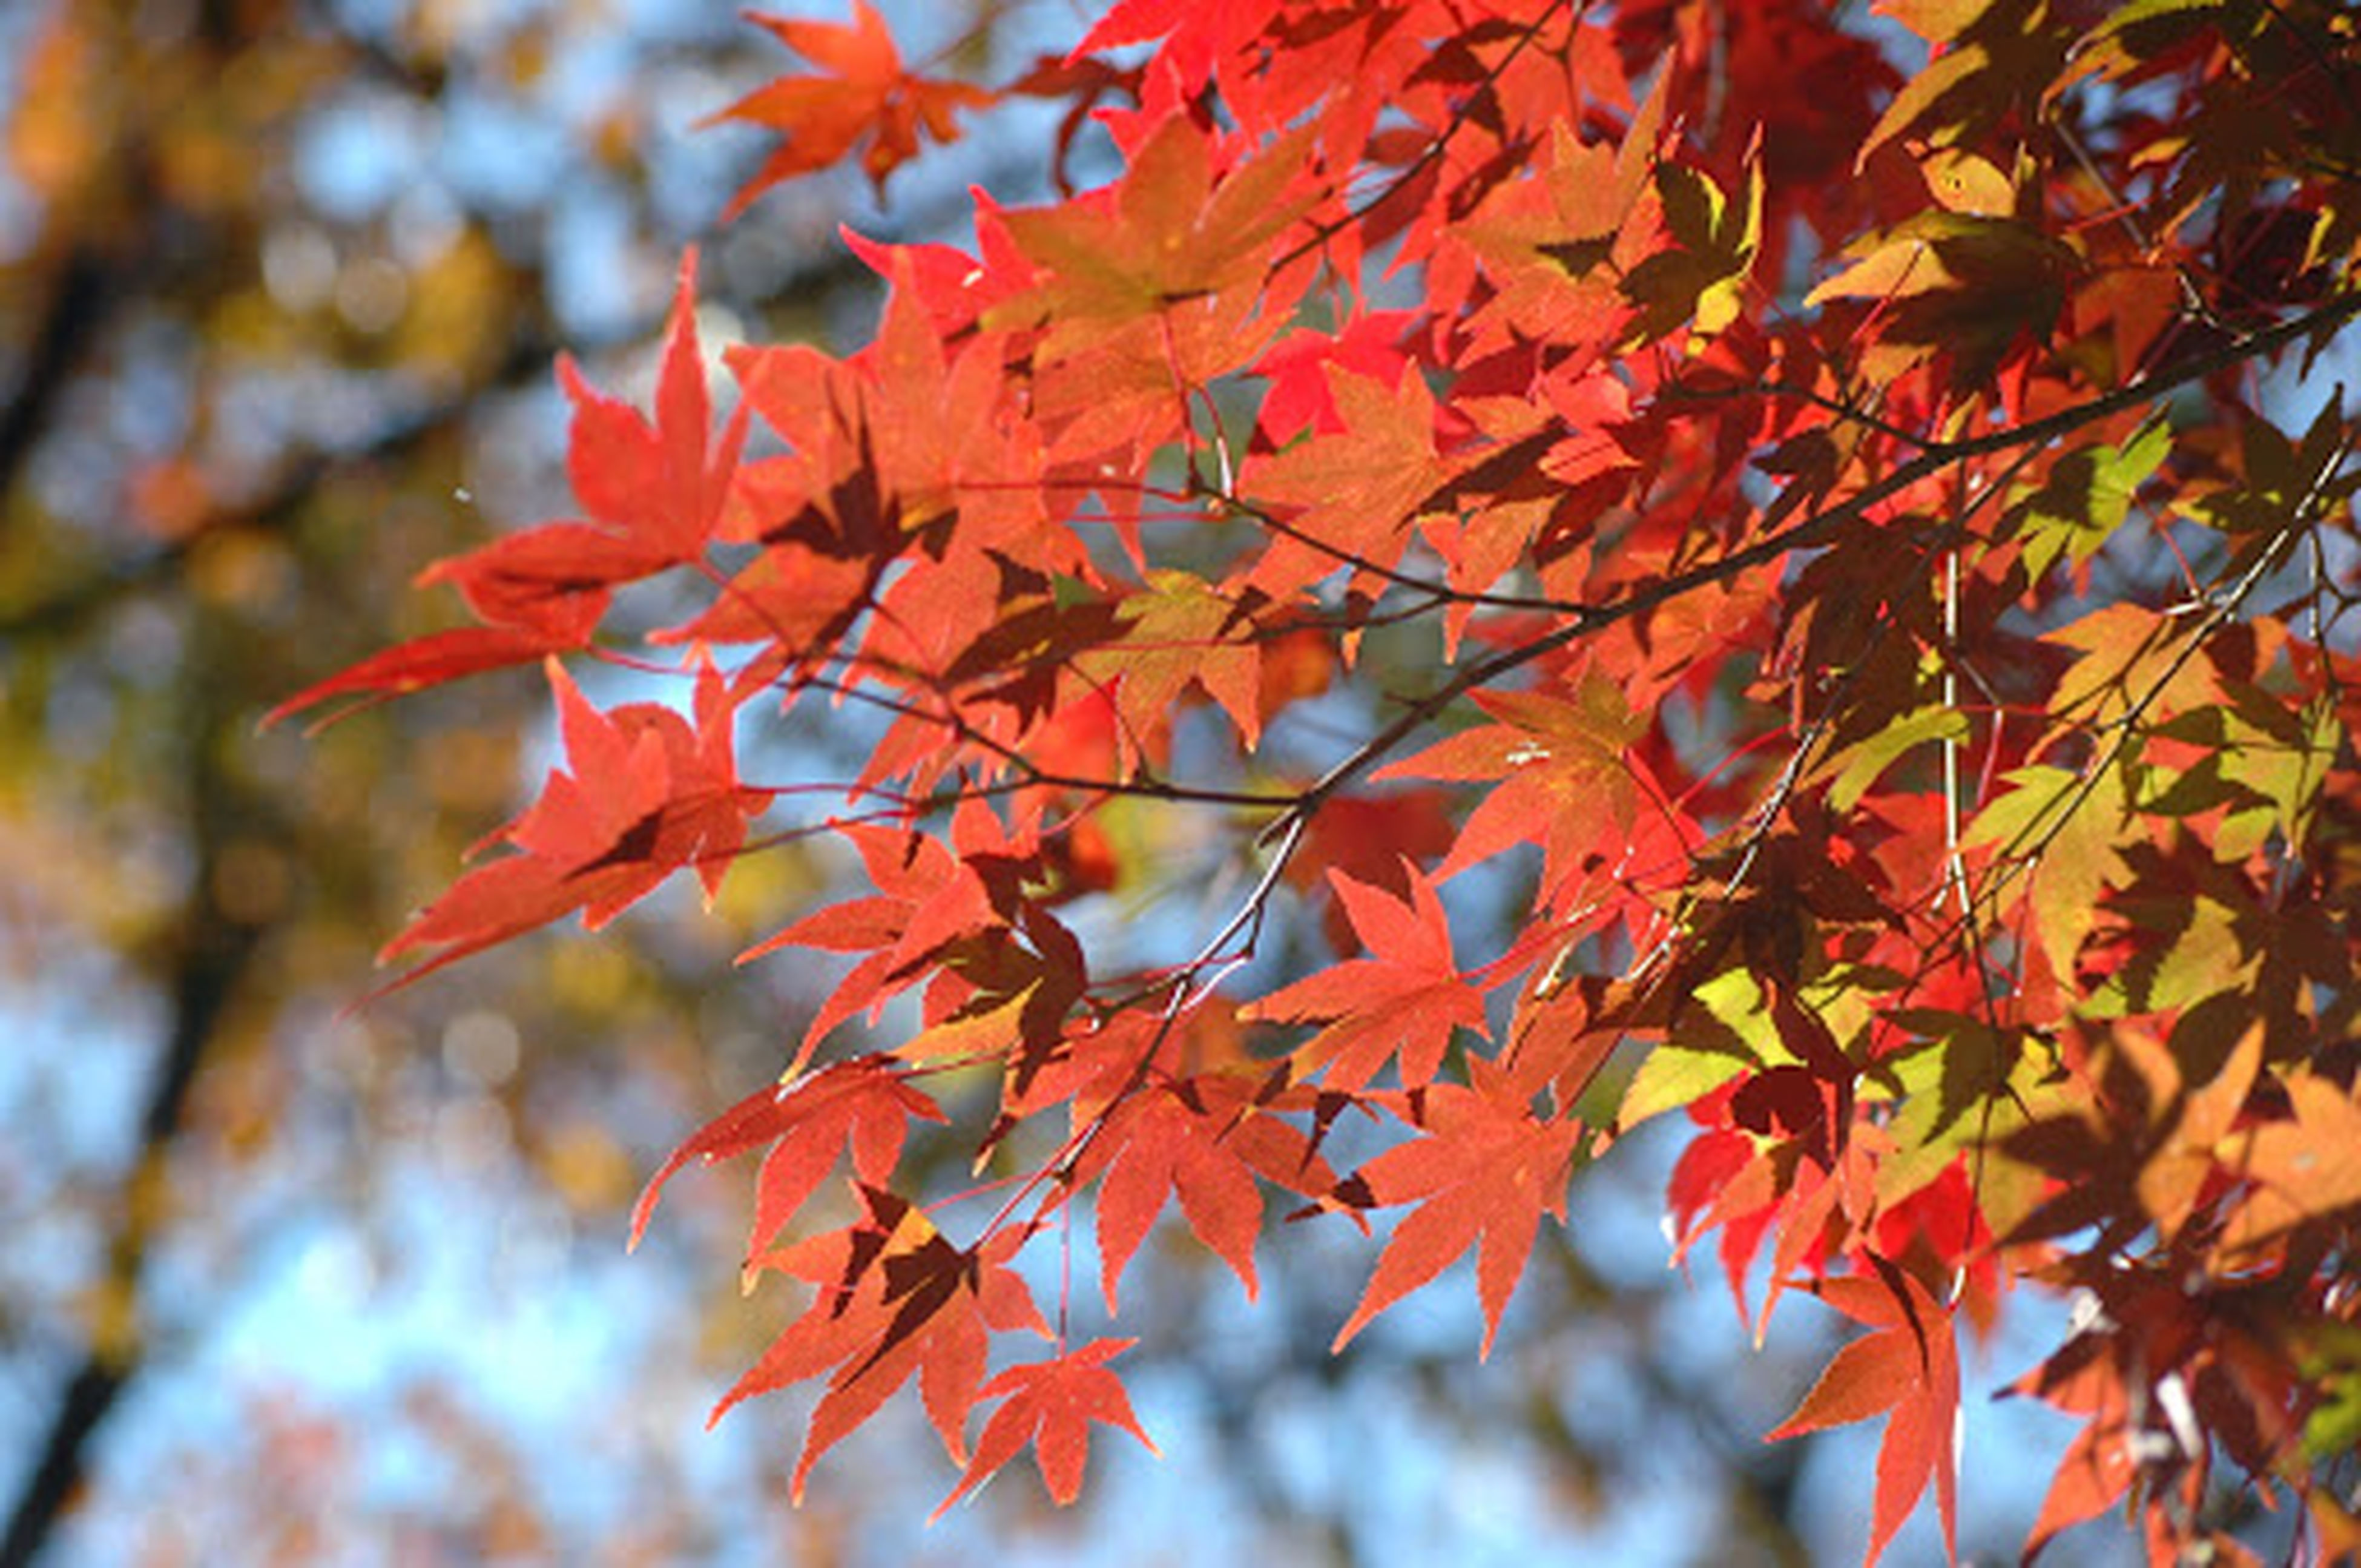 autumn, change, leaf, season, tree, branch, orange color, low angle view, leaves, nature, growth, maple leaf, beauty in nature, focus on foreground, close-up, maple tree, day, tranquility, outdoors, no people